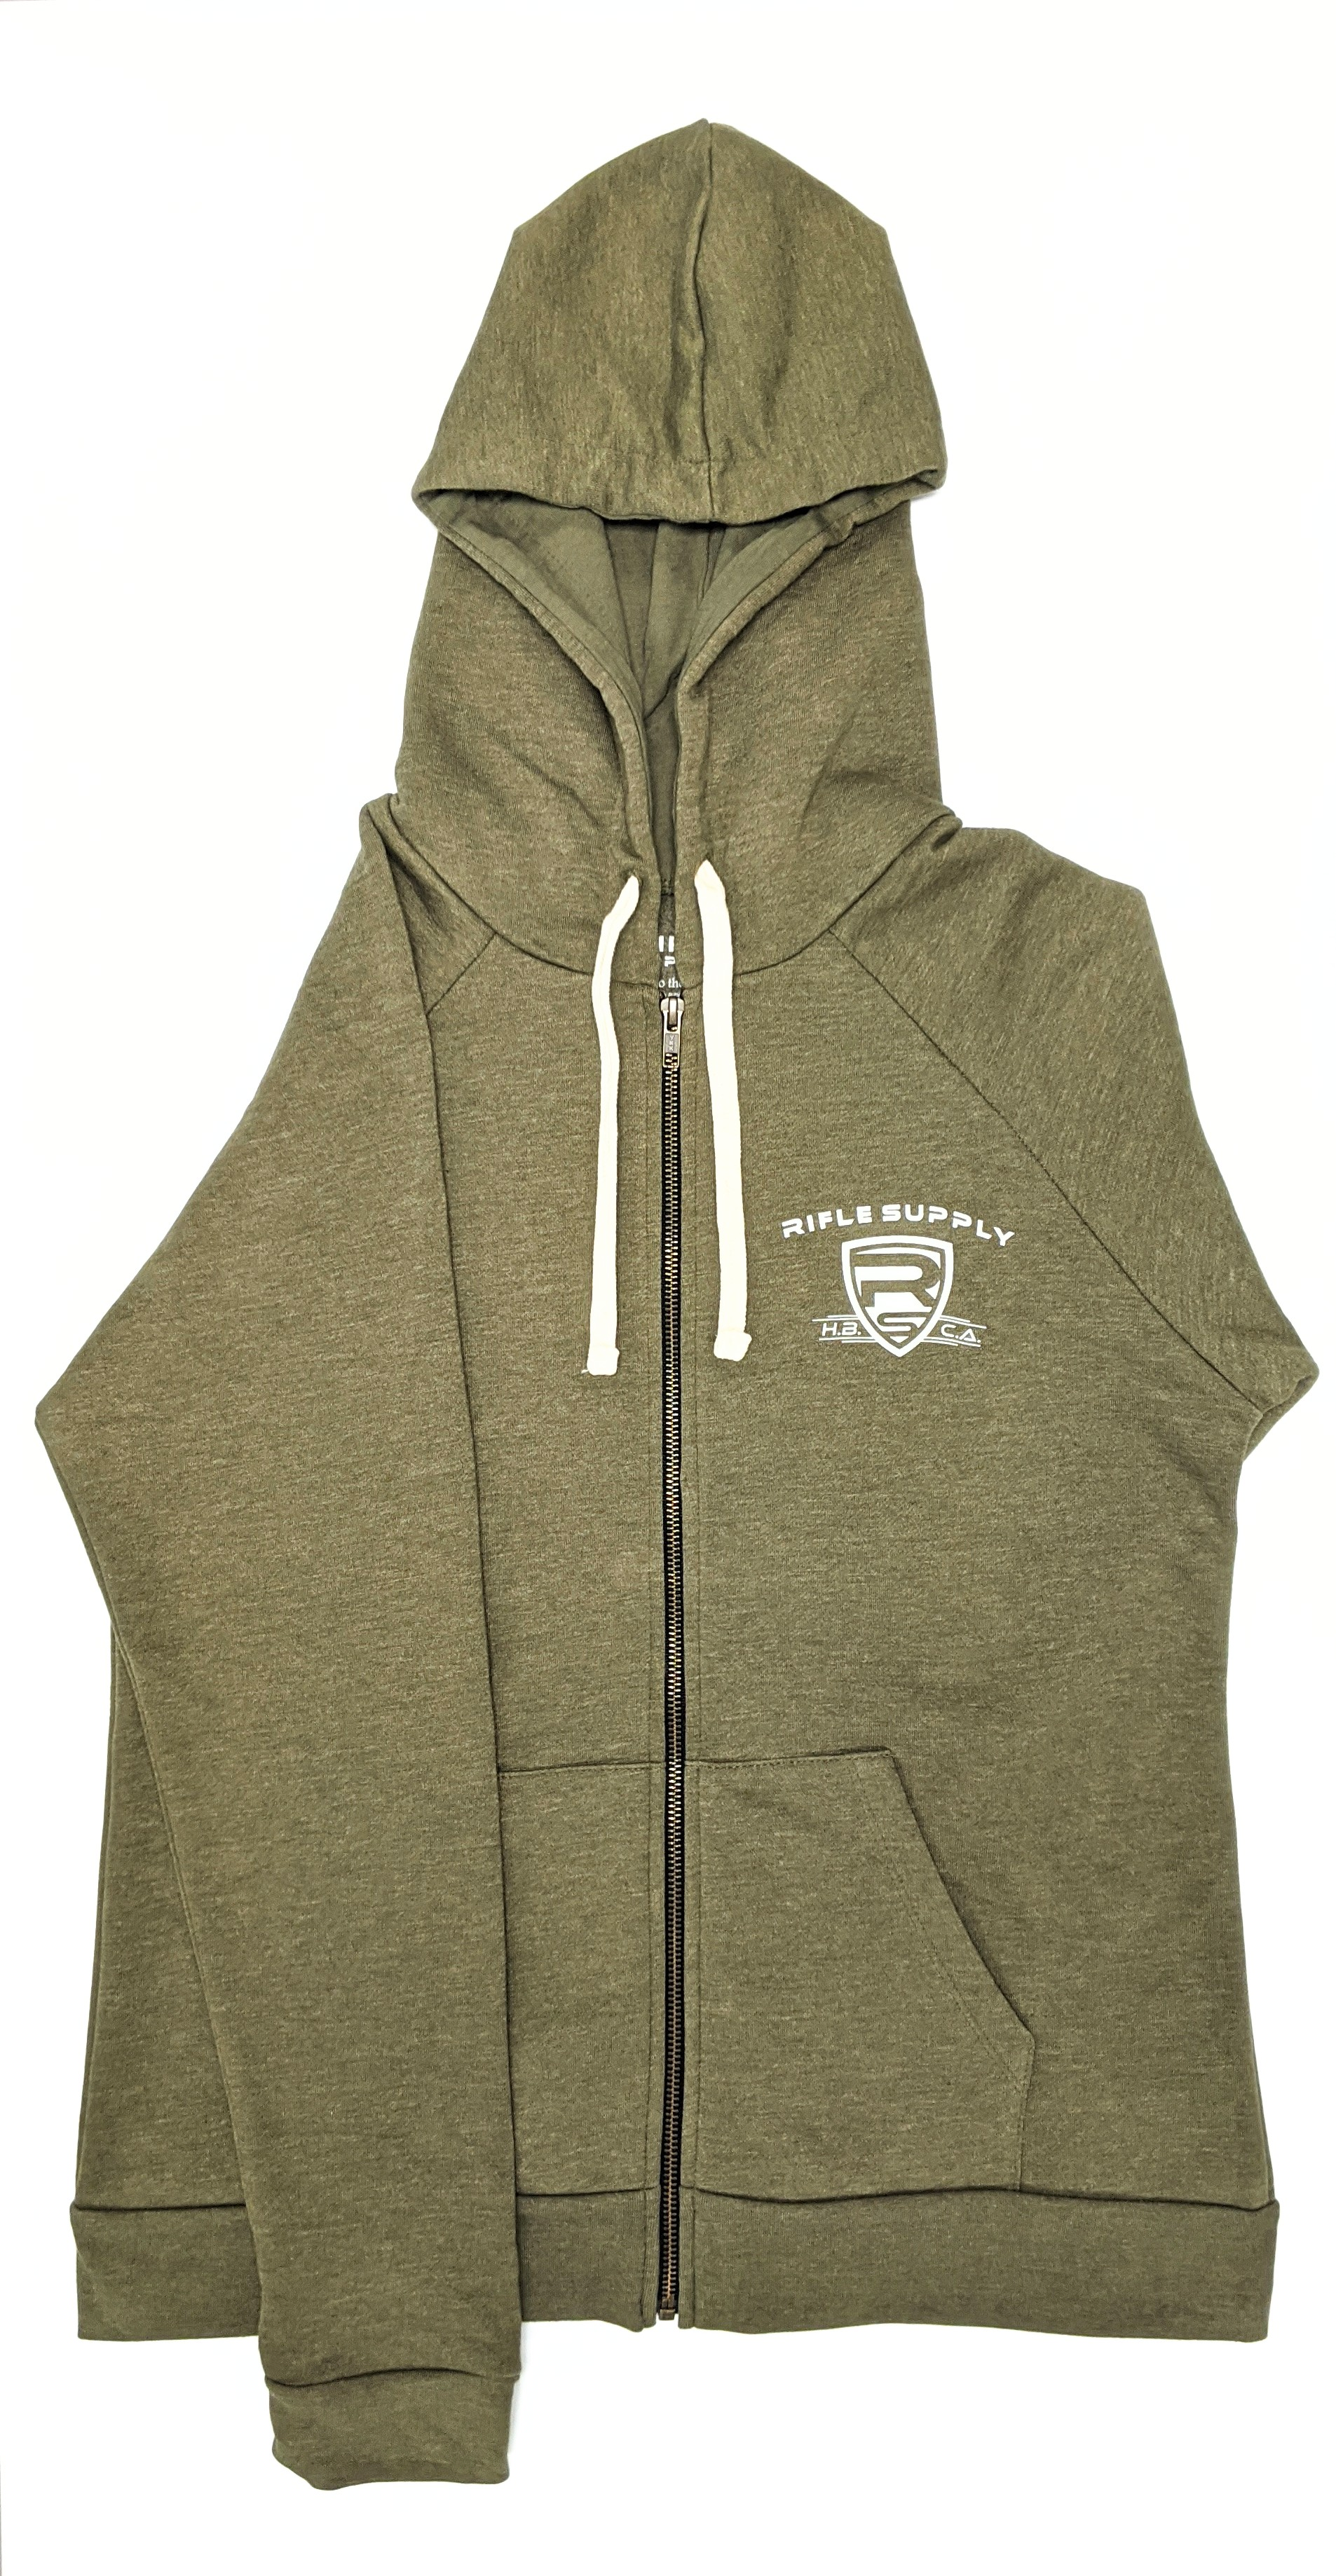 Rifle Supply Women's Zip-Up Hoodie - Heather Military Green